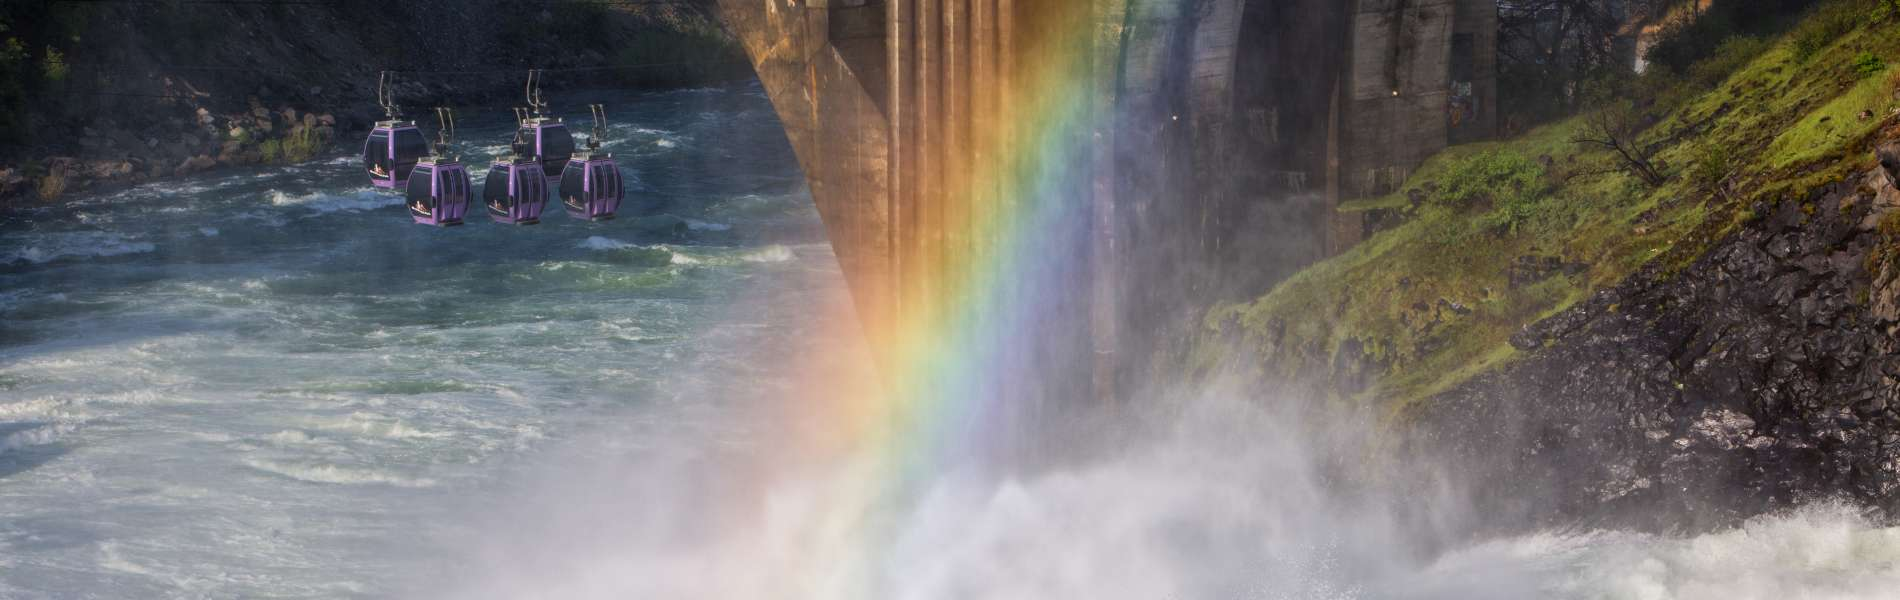 Rainbow over Spokane Falls